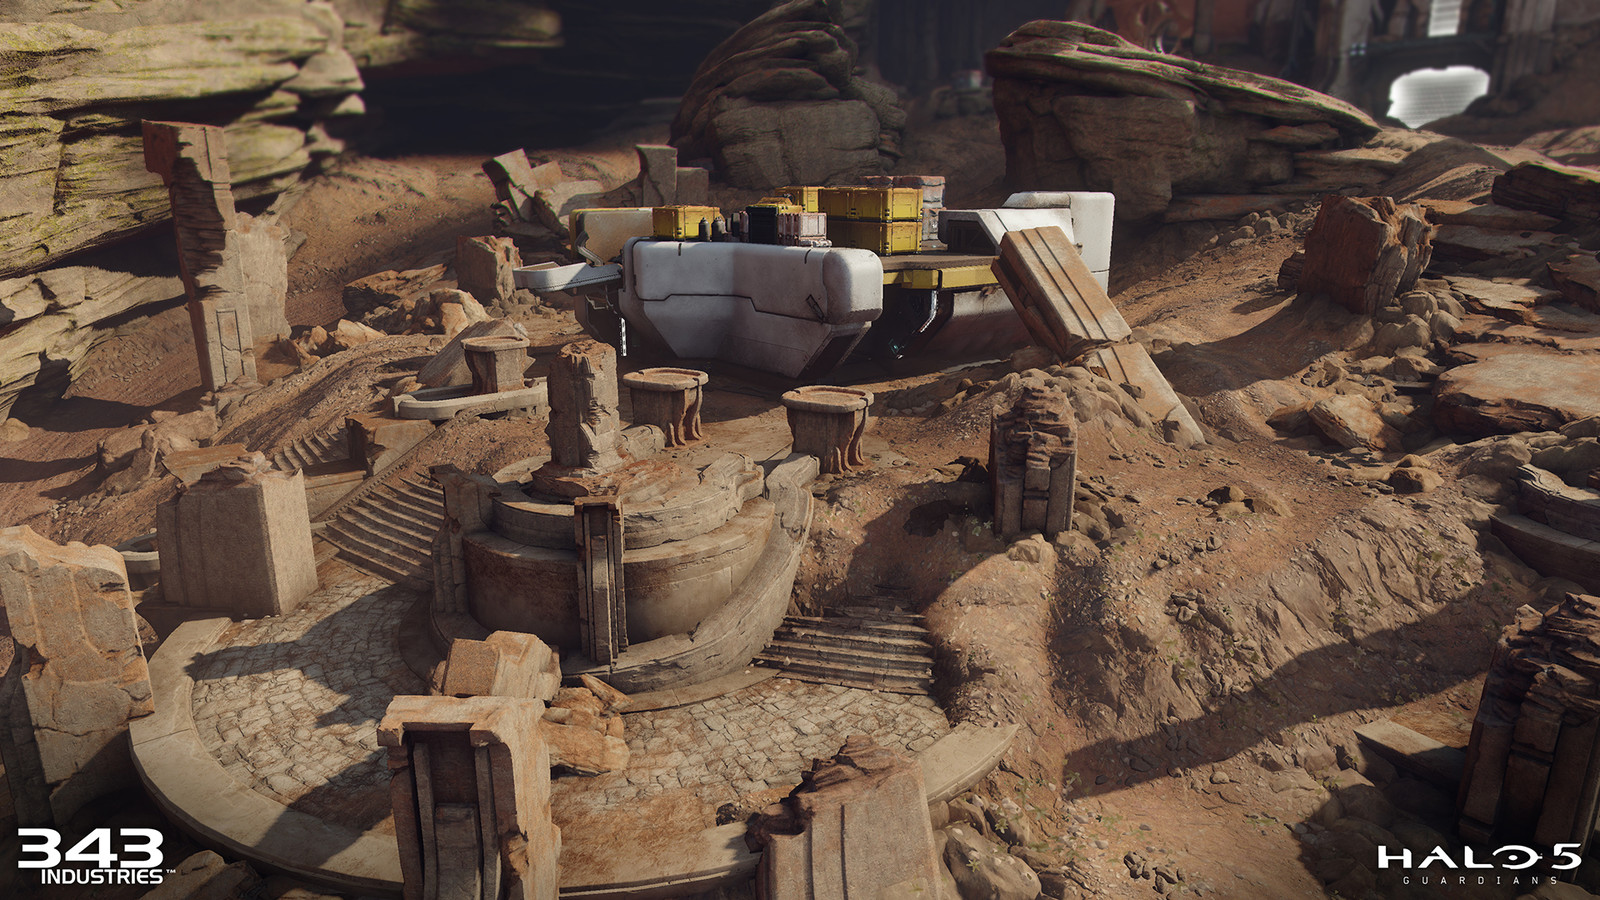 Set up material blending for the dirt and grime on armory base and ruins